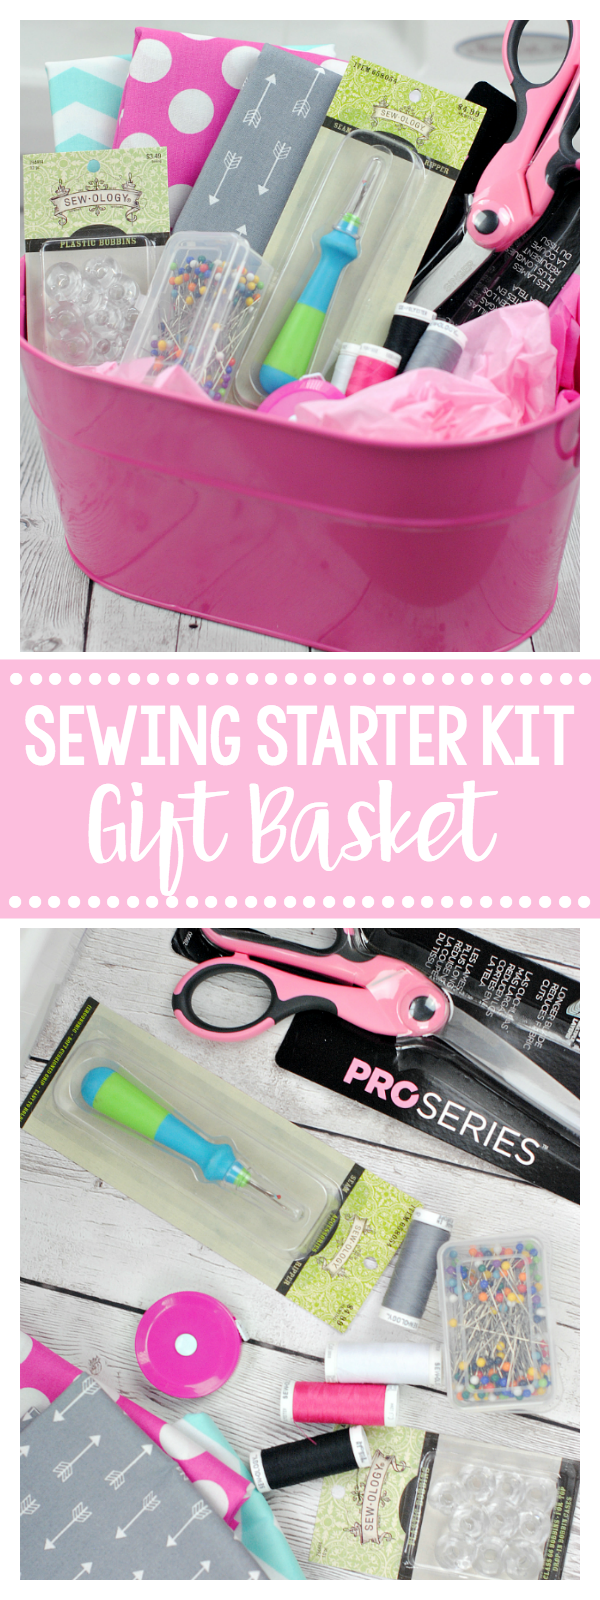 Learn to Sew Gift Basket